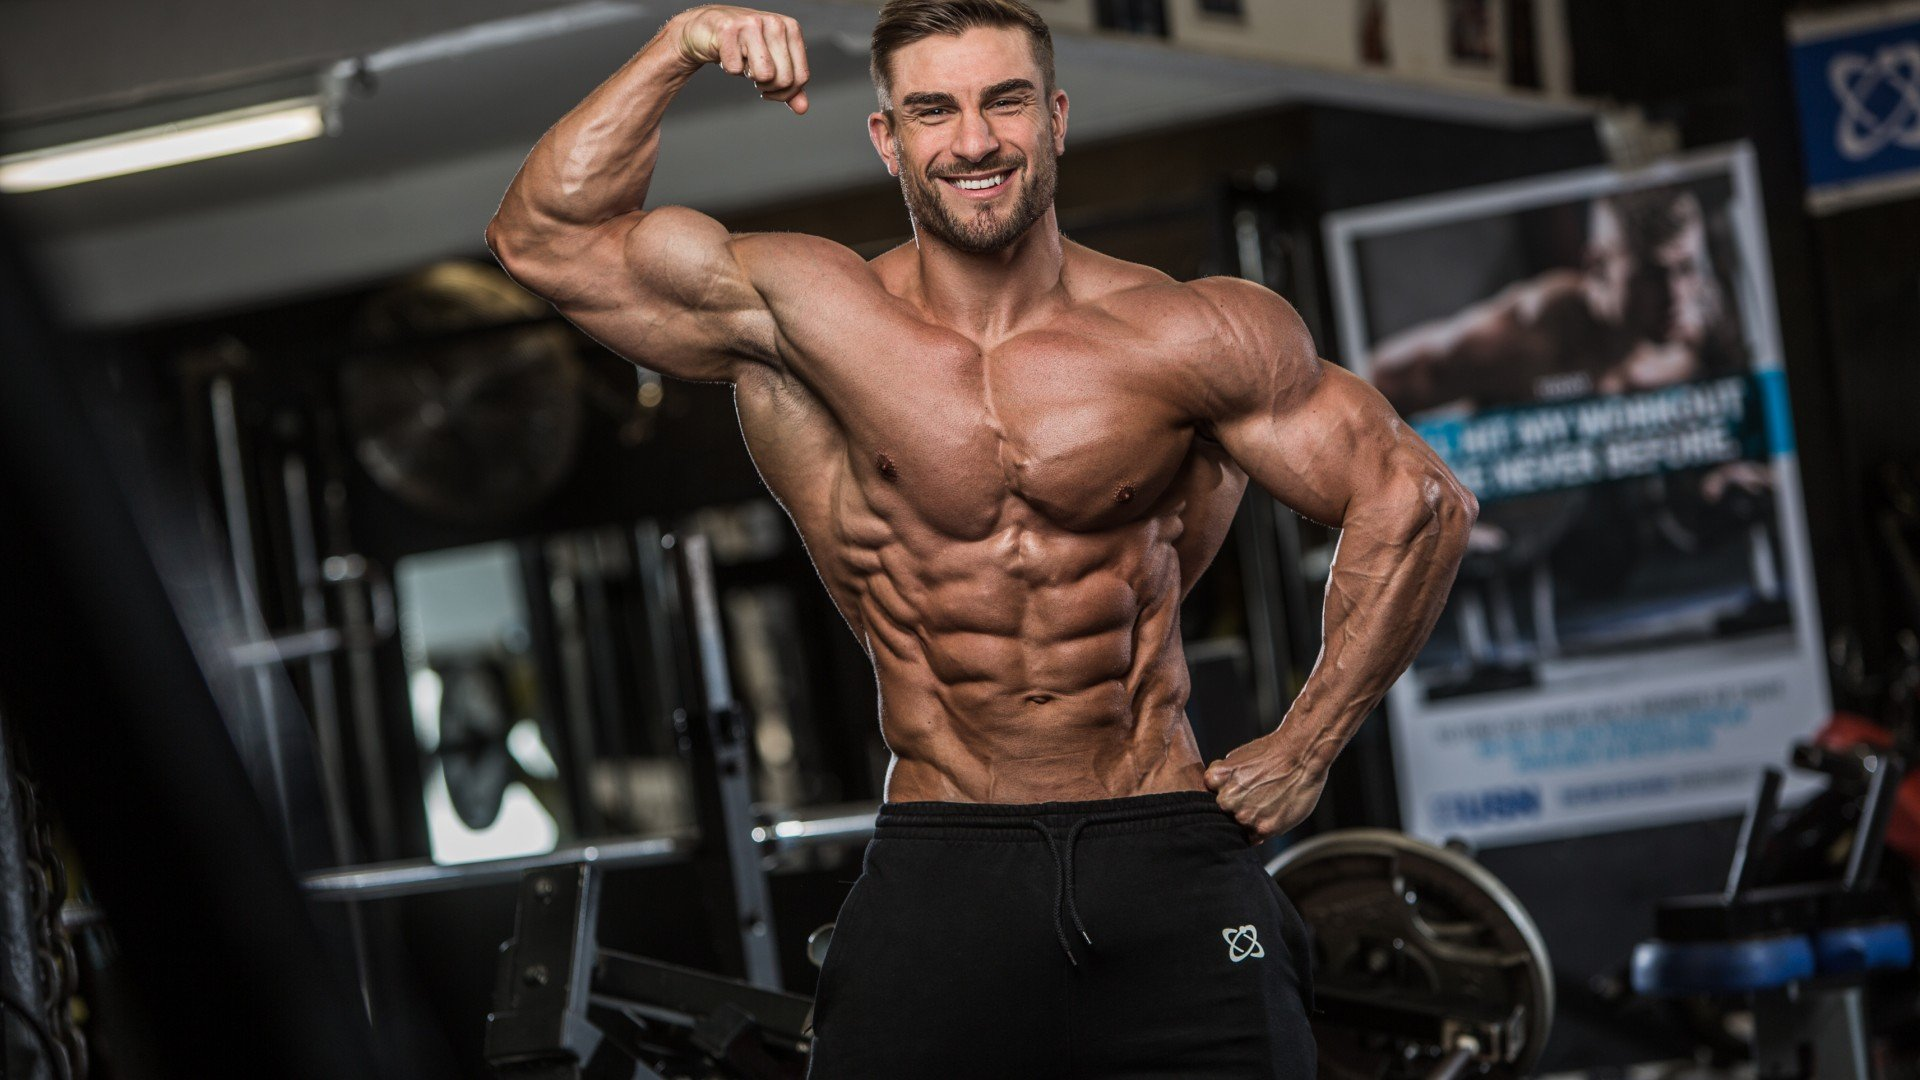 Muscle Building Tips To Gain Extra Mass (Scientifically ...